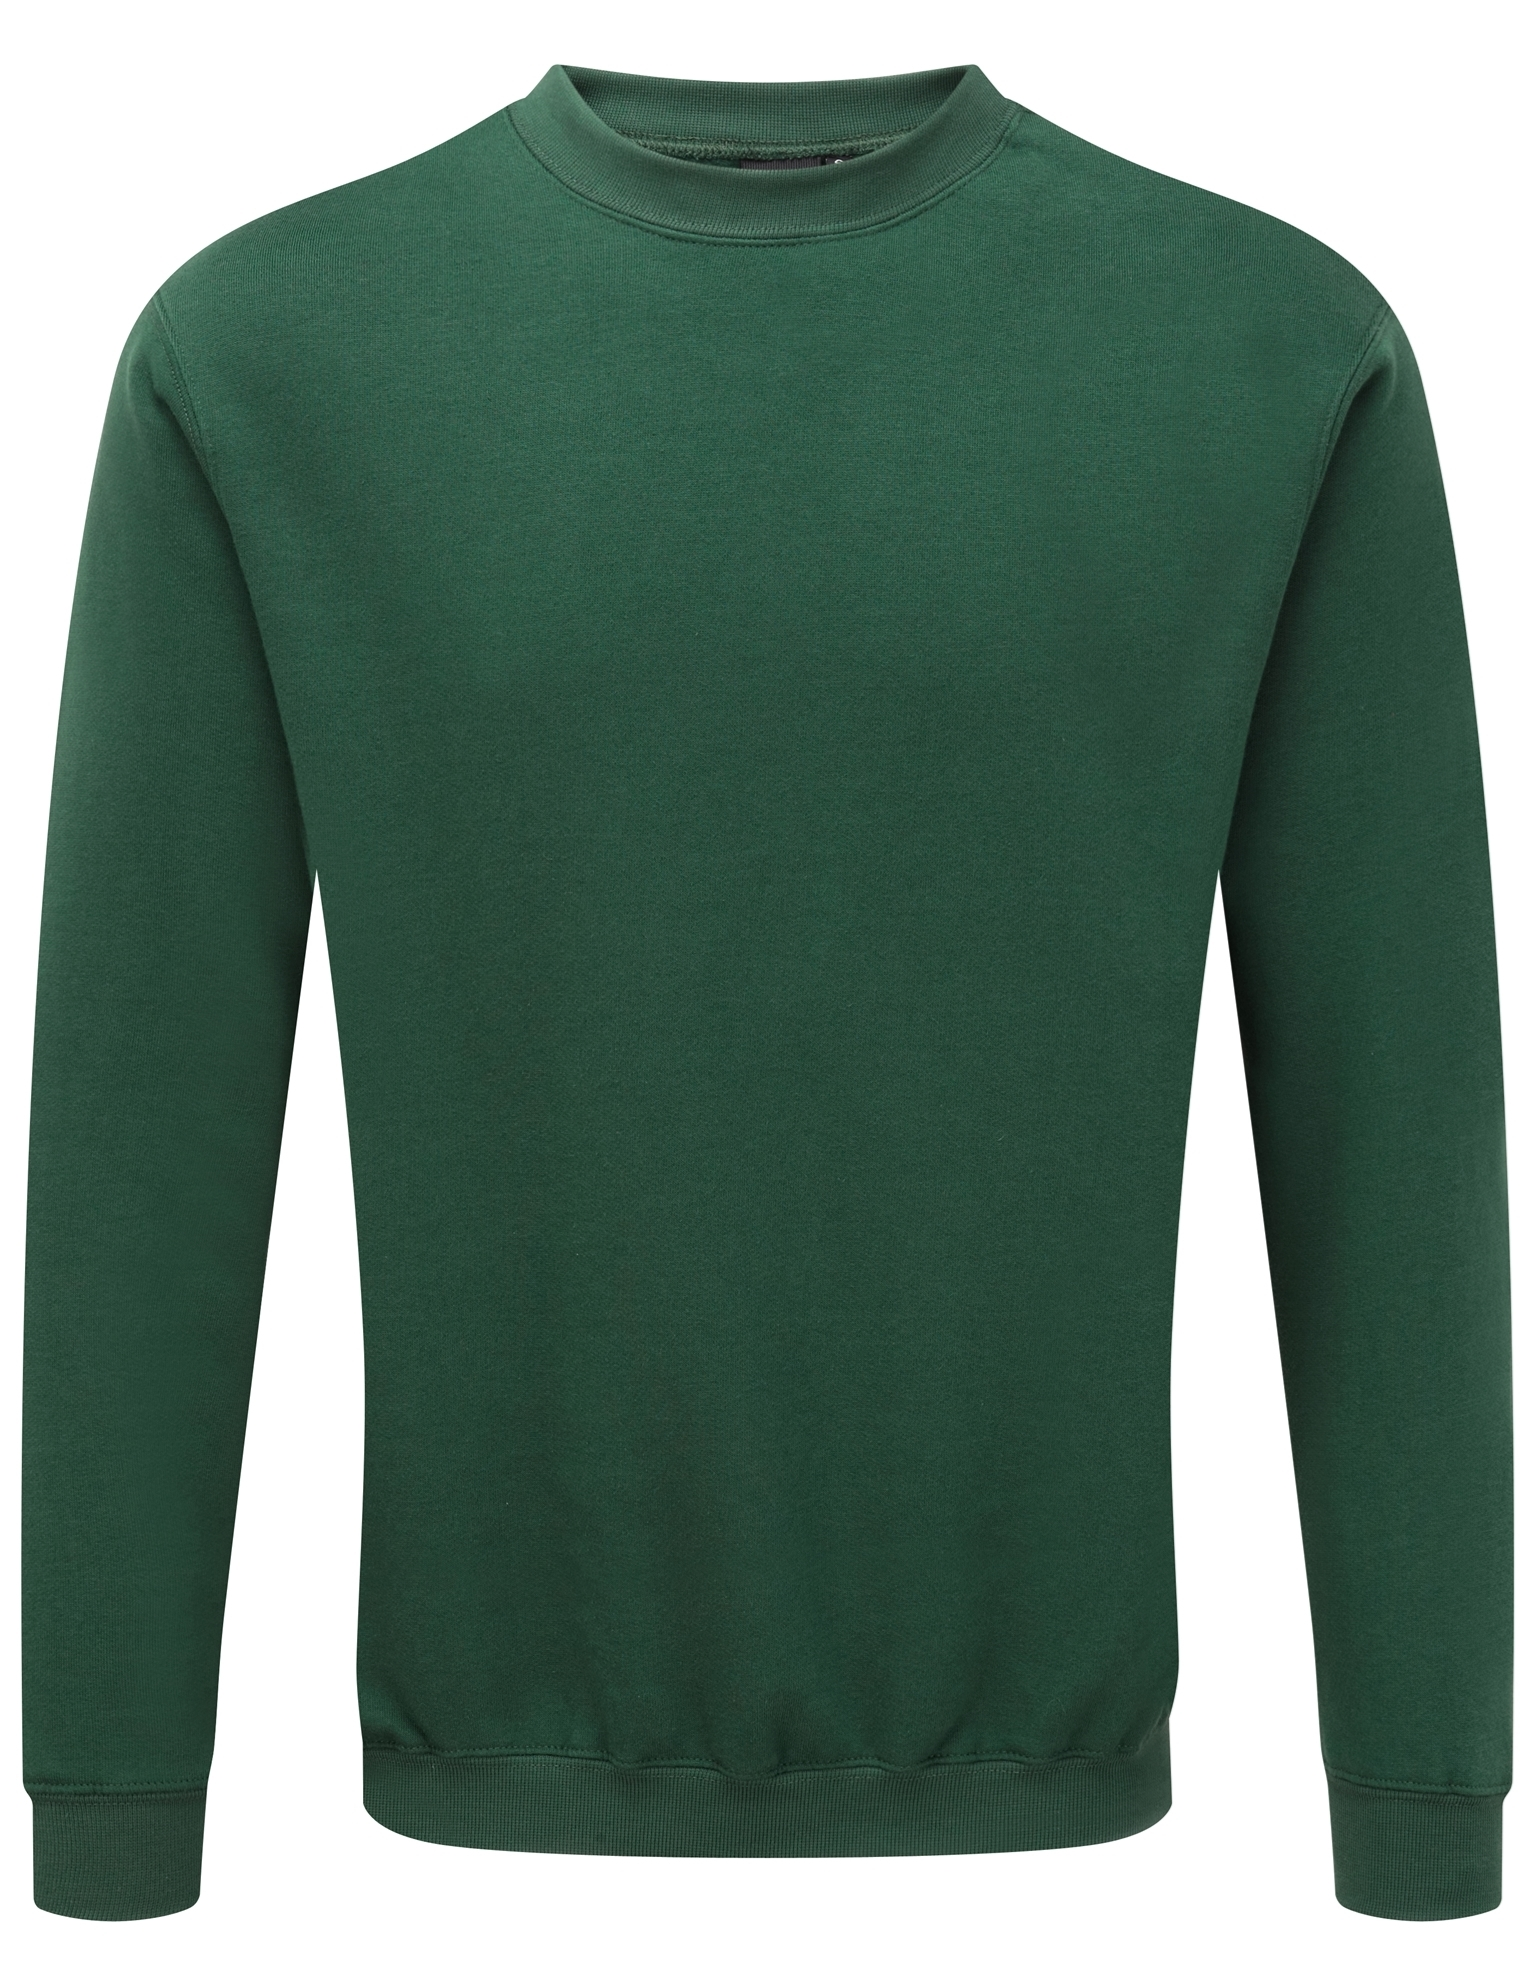 Picture of Sweatshirt - Bottle Green